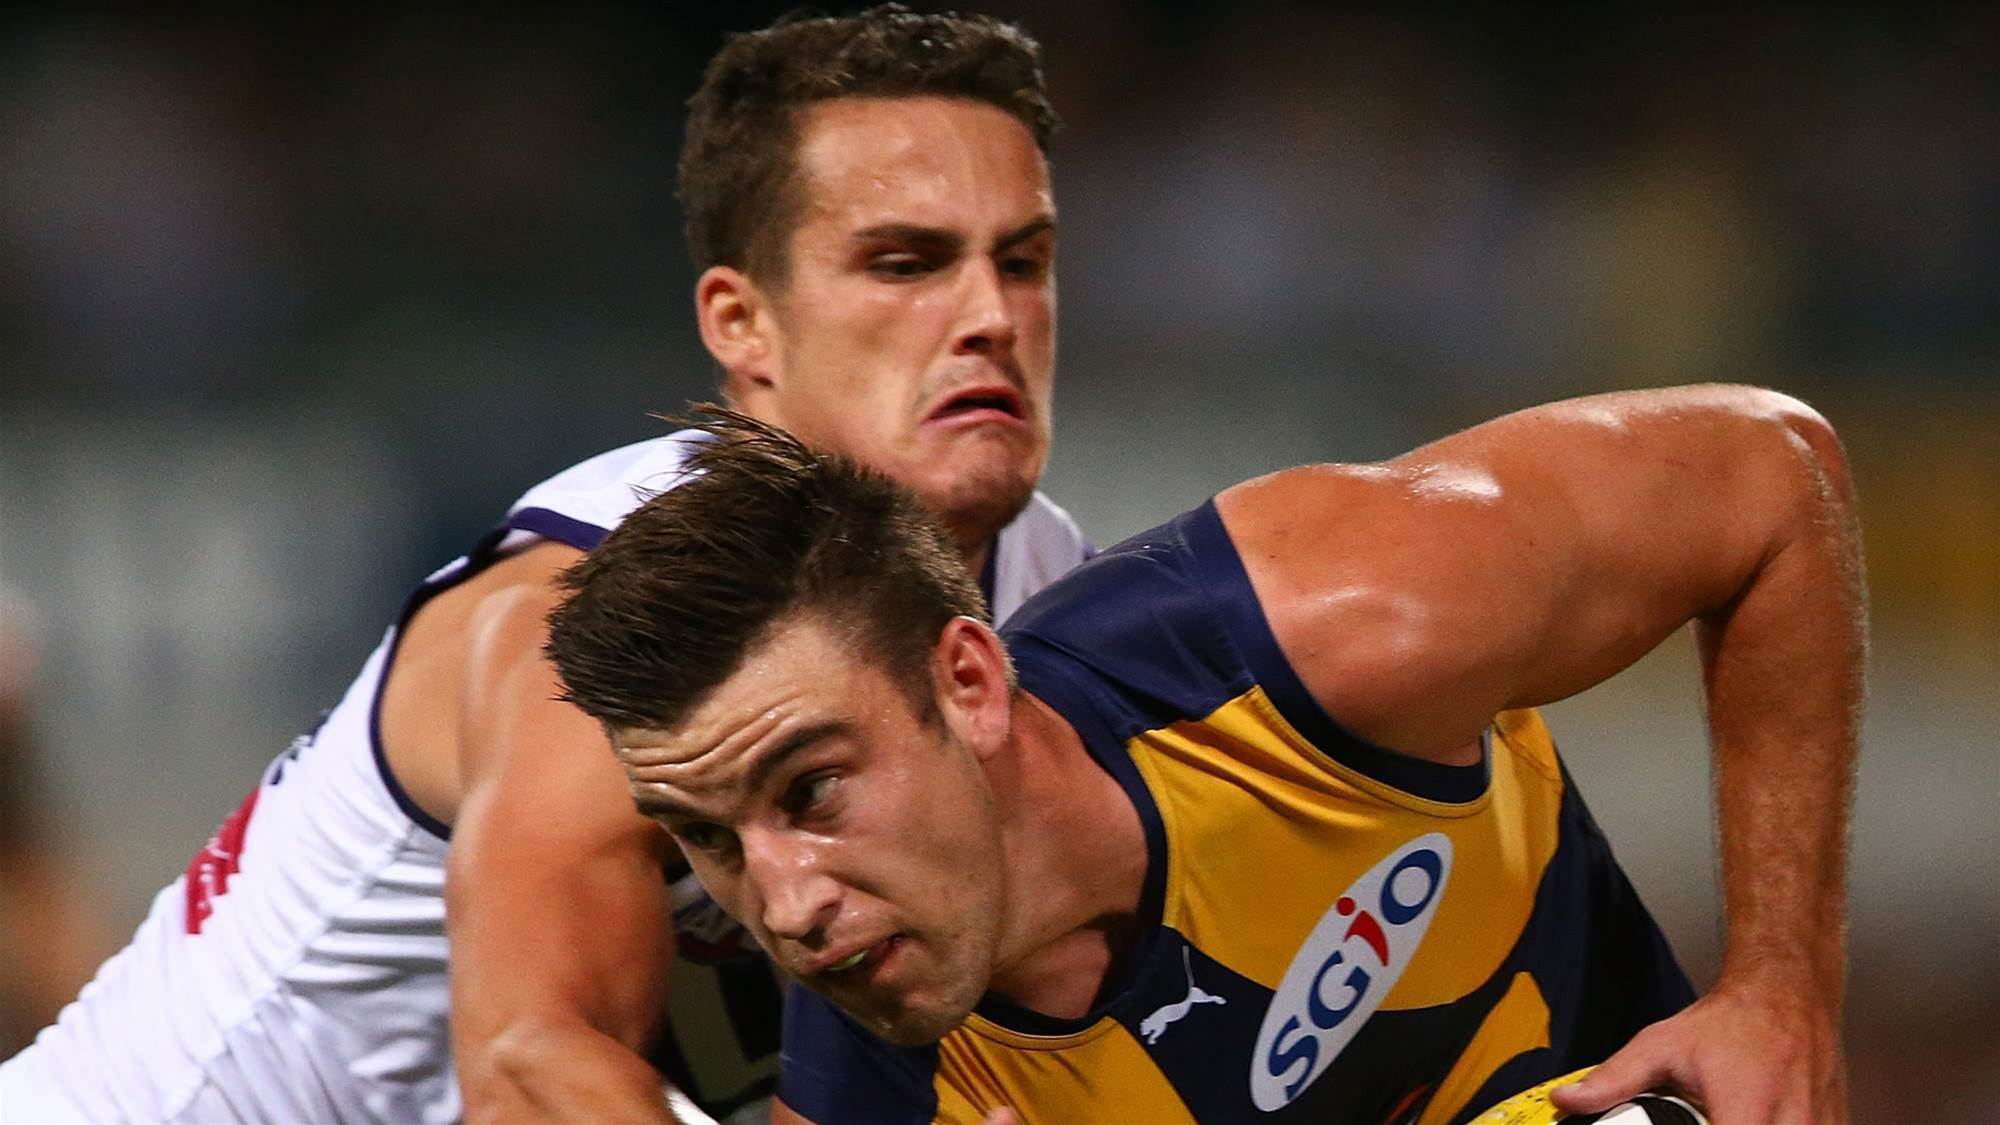 AFL player released for personal reasons